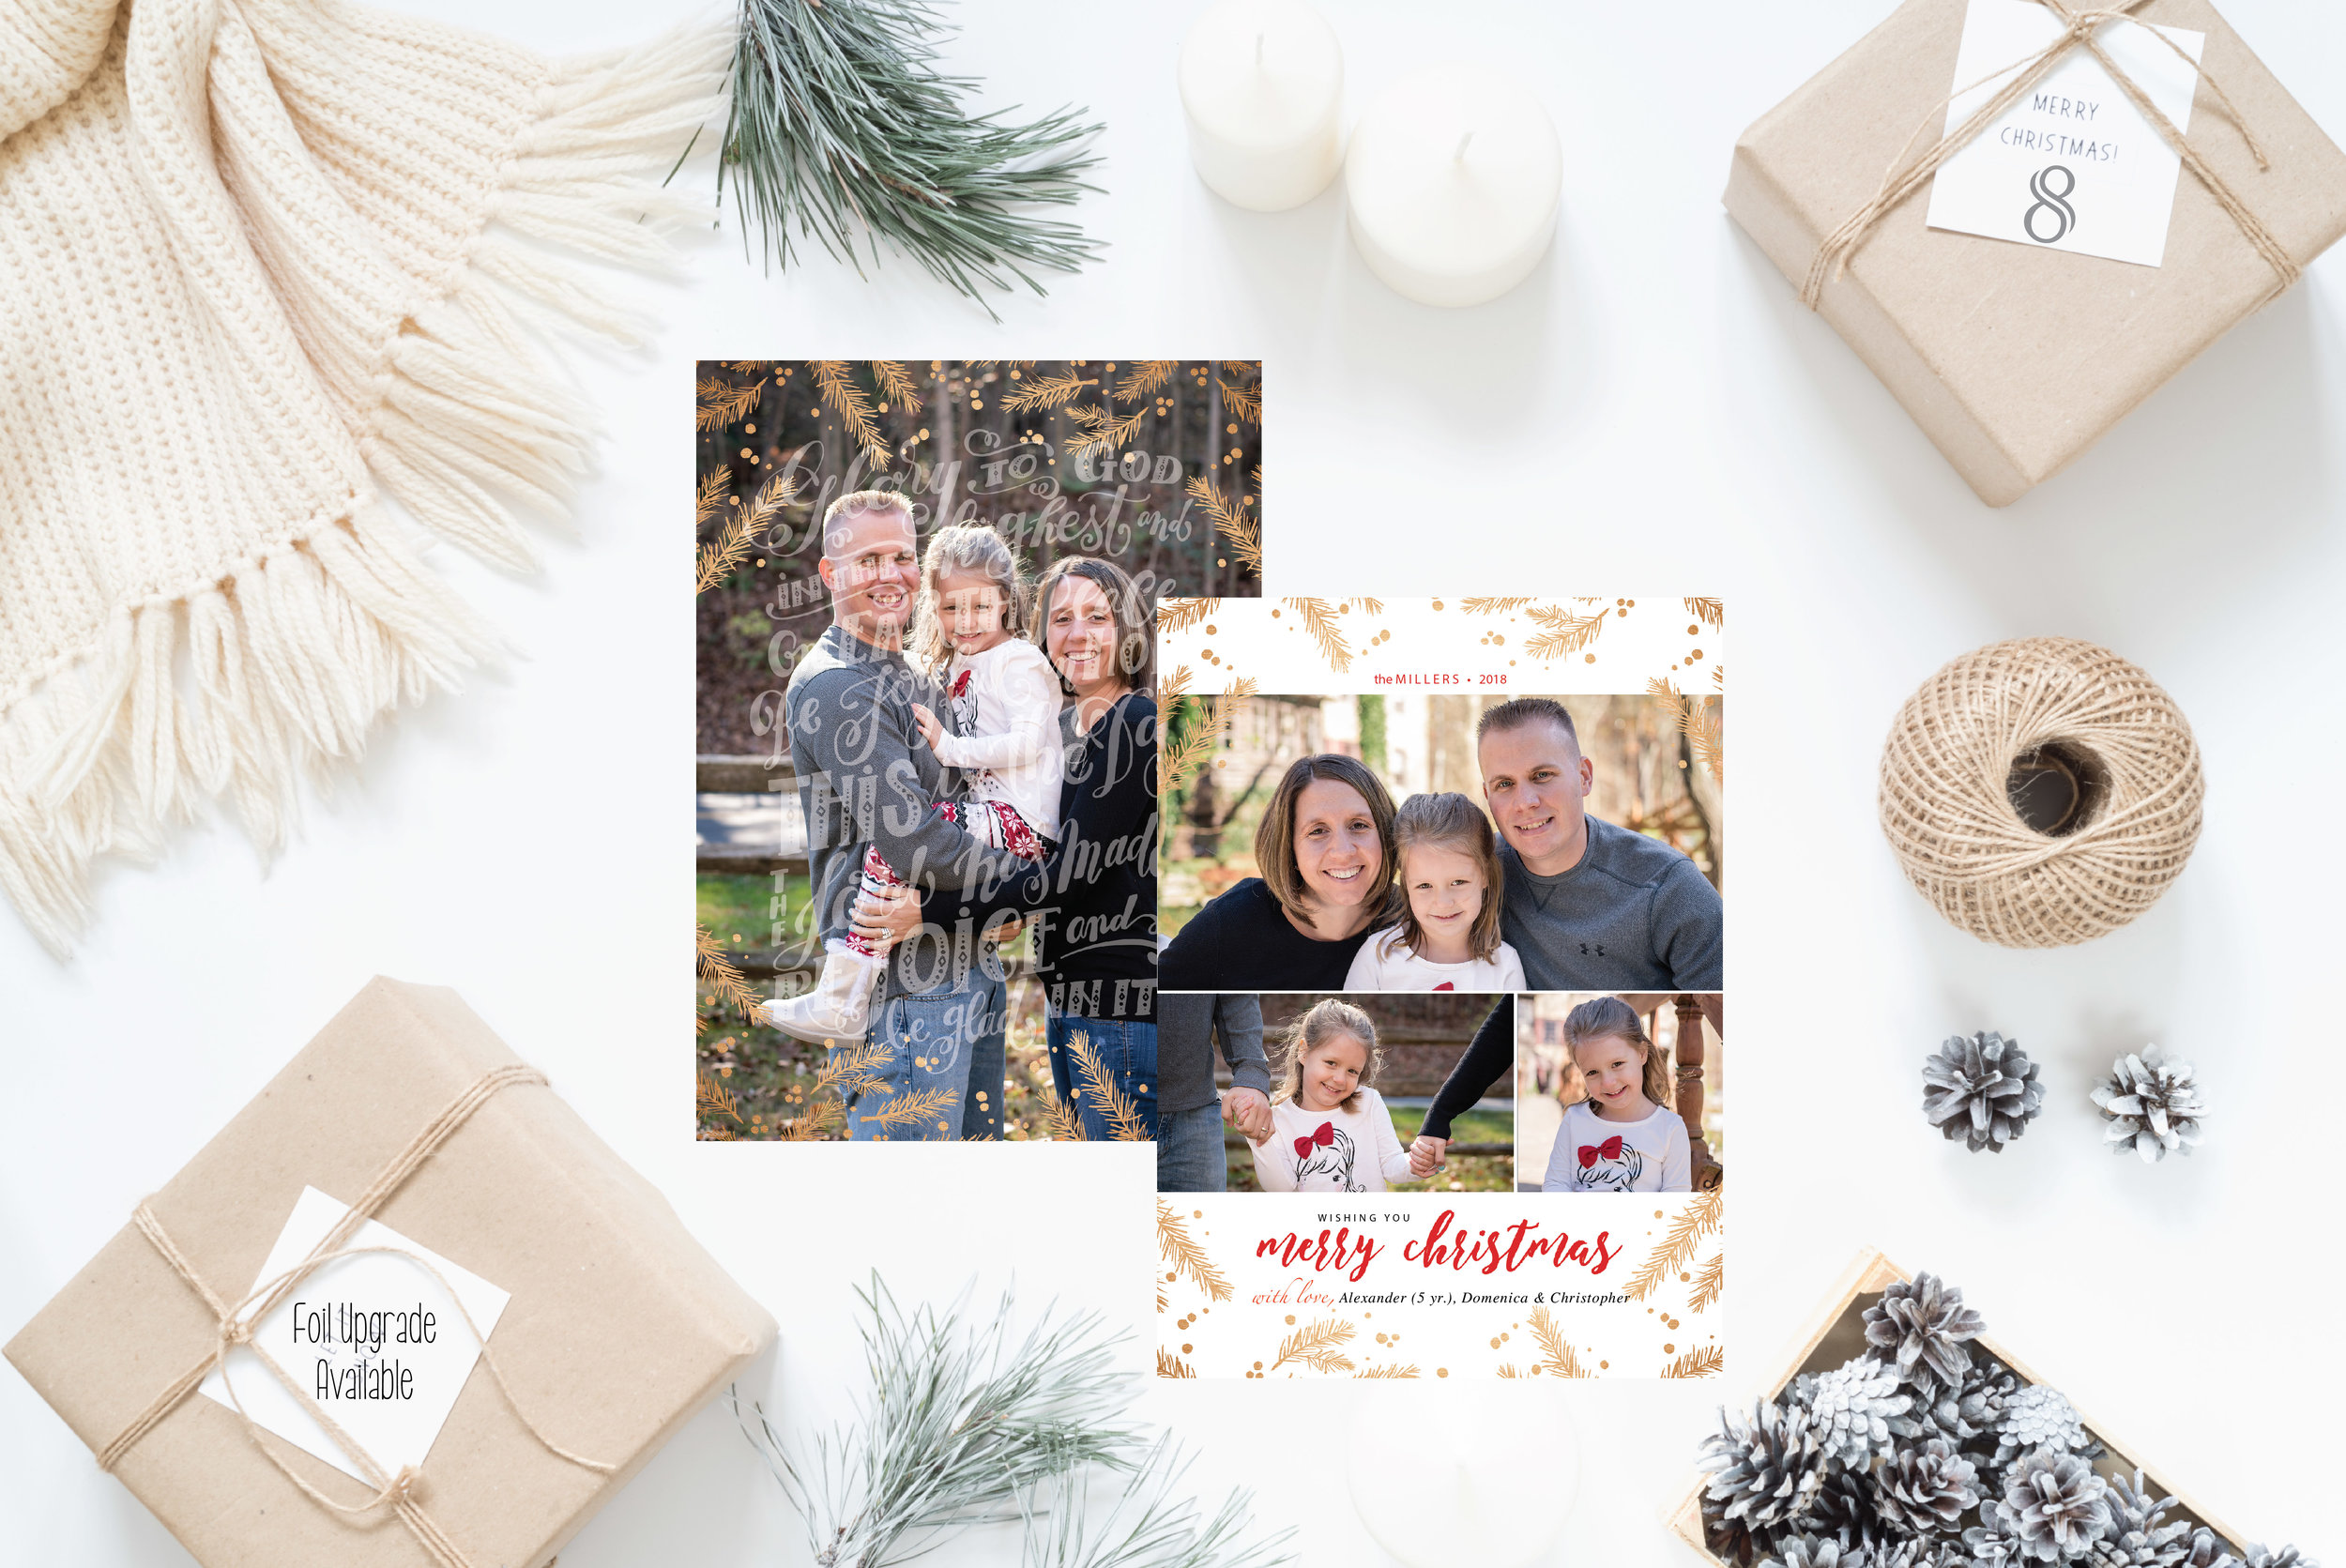 8- Christmas Cards Holiday Cards 2017 JesSmith Designs_Pine Foil Overlay.jpg